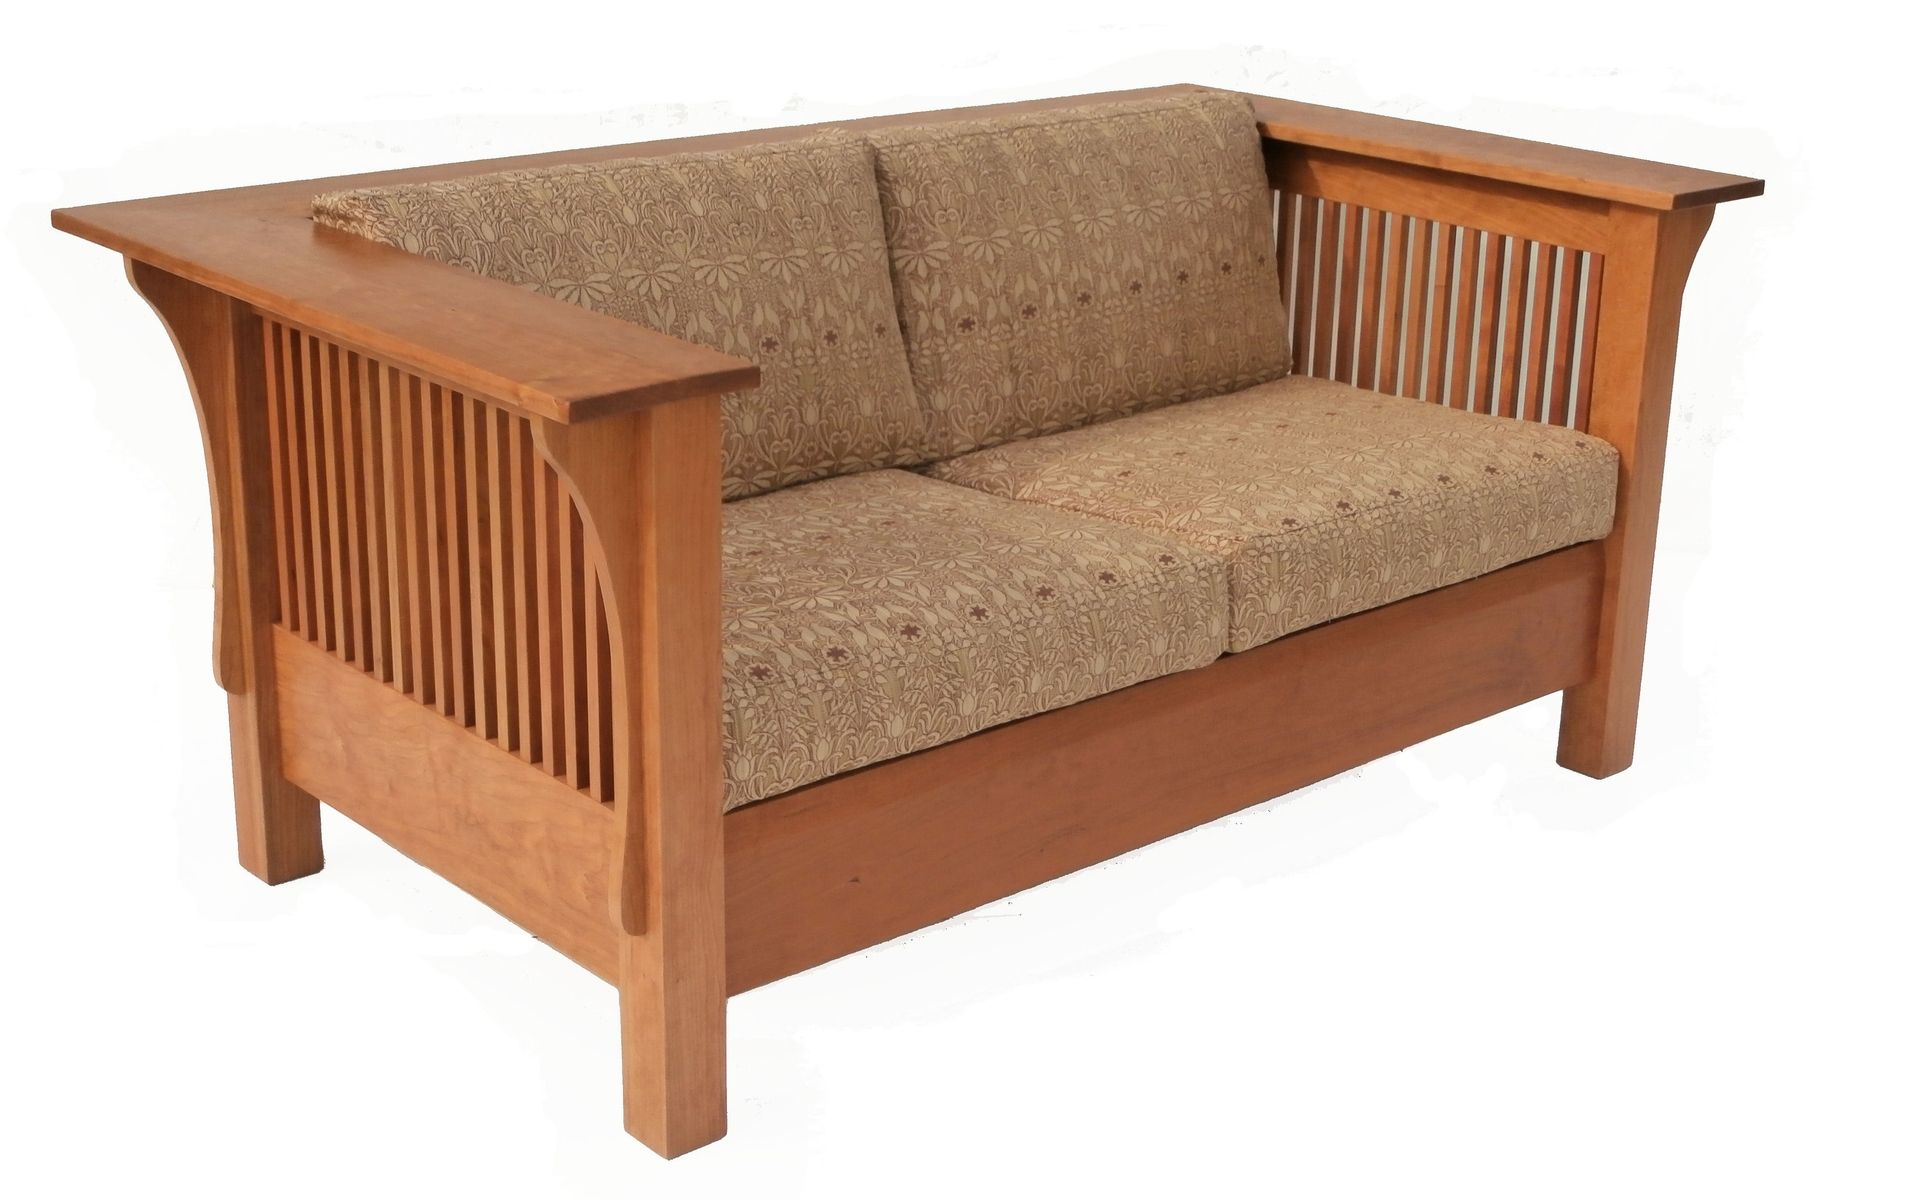 Buy Handmade Prairie Settle Cherry With Spindles Made To